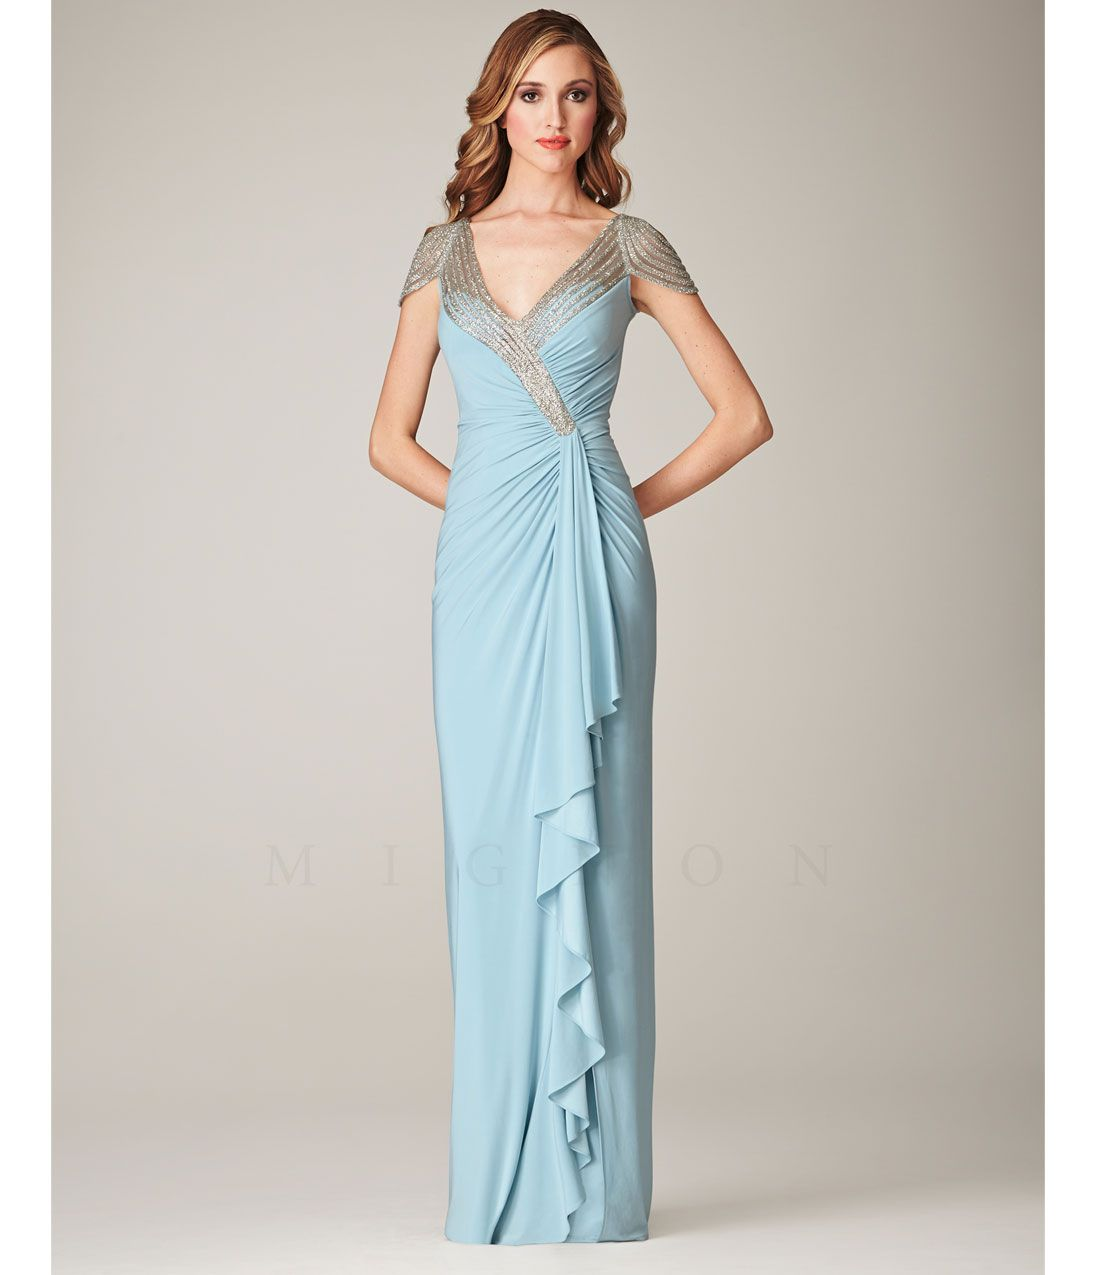 Long evening dresses on sale uk clothes